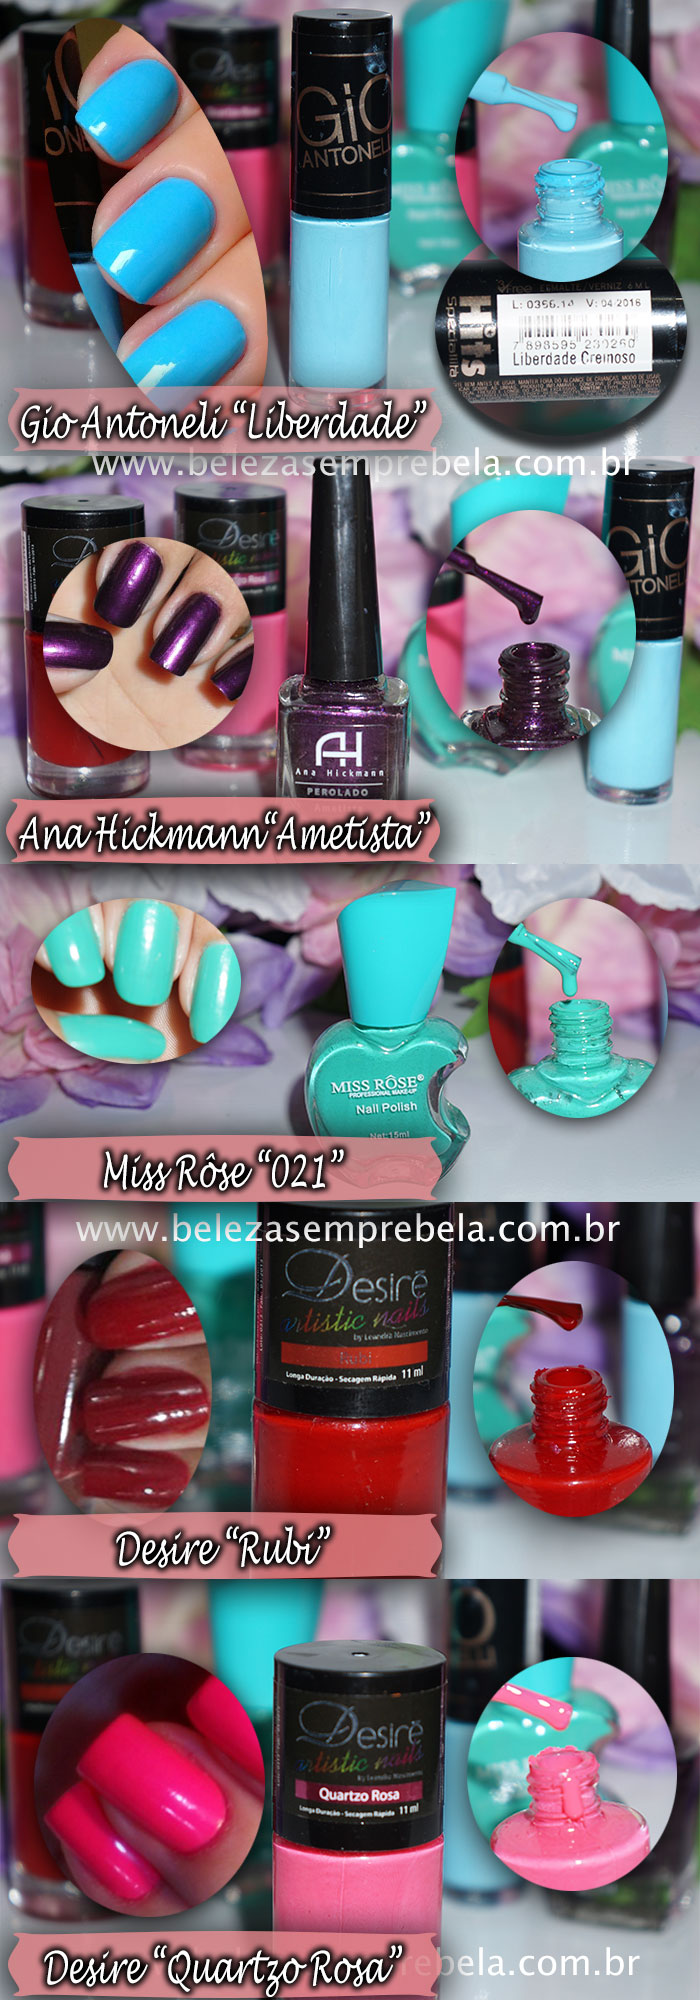 Top Five esmaltes favoritos